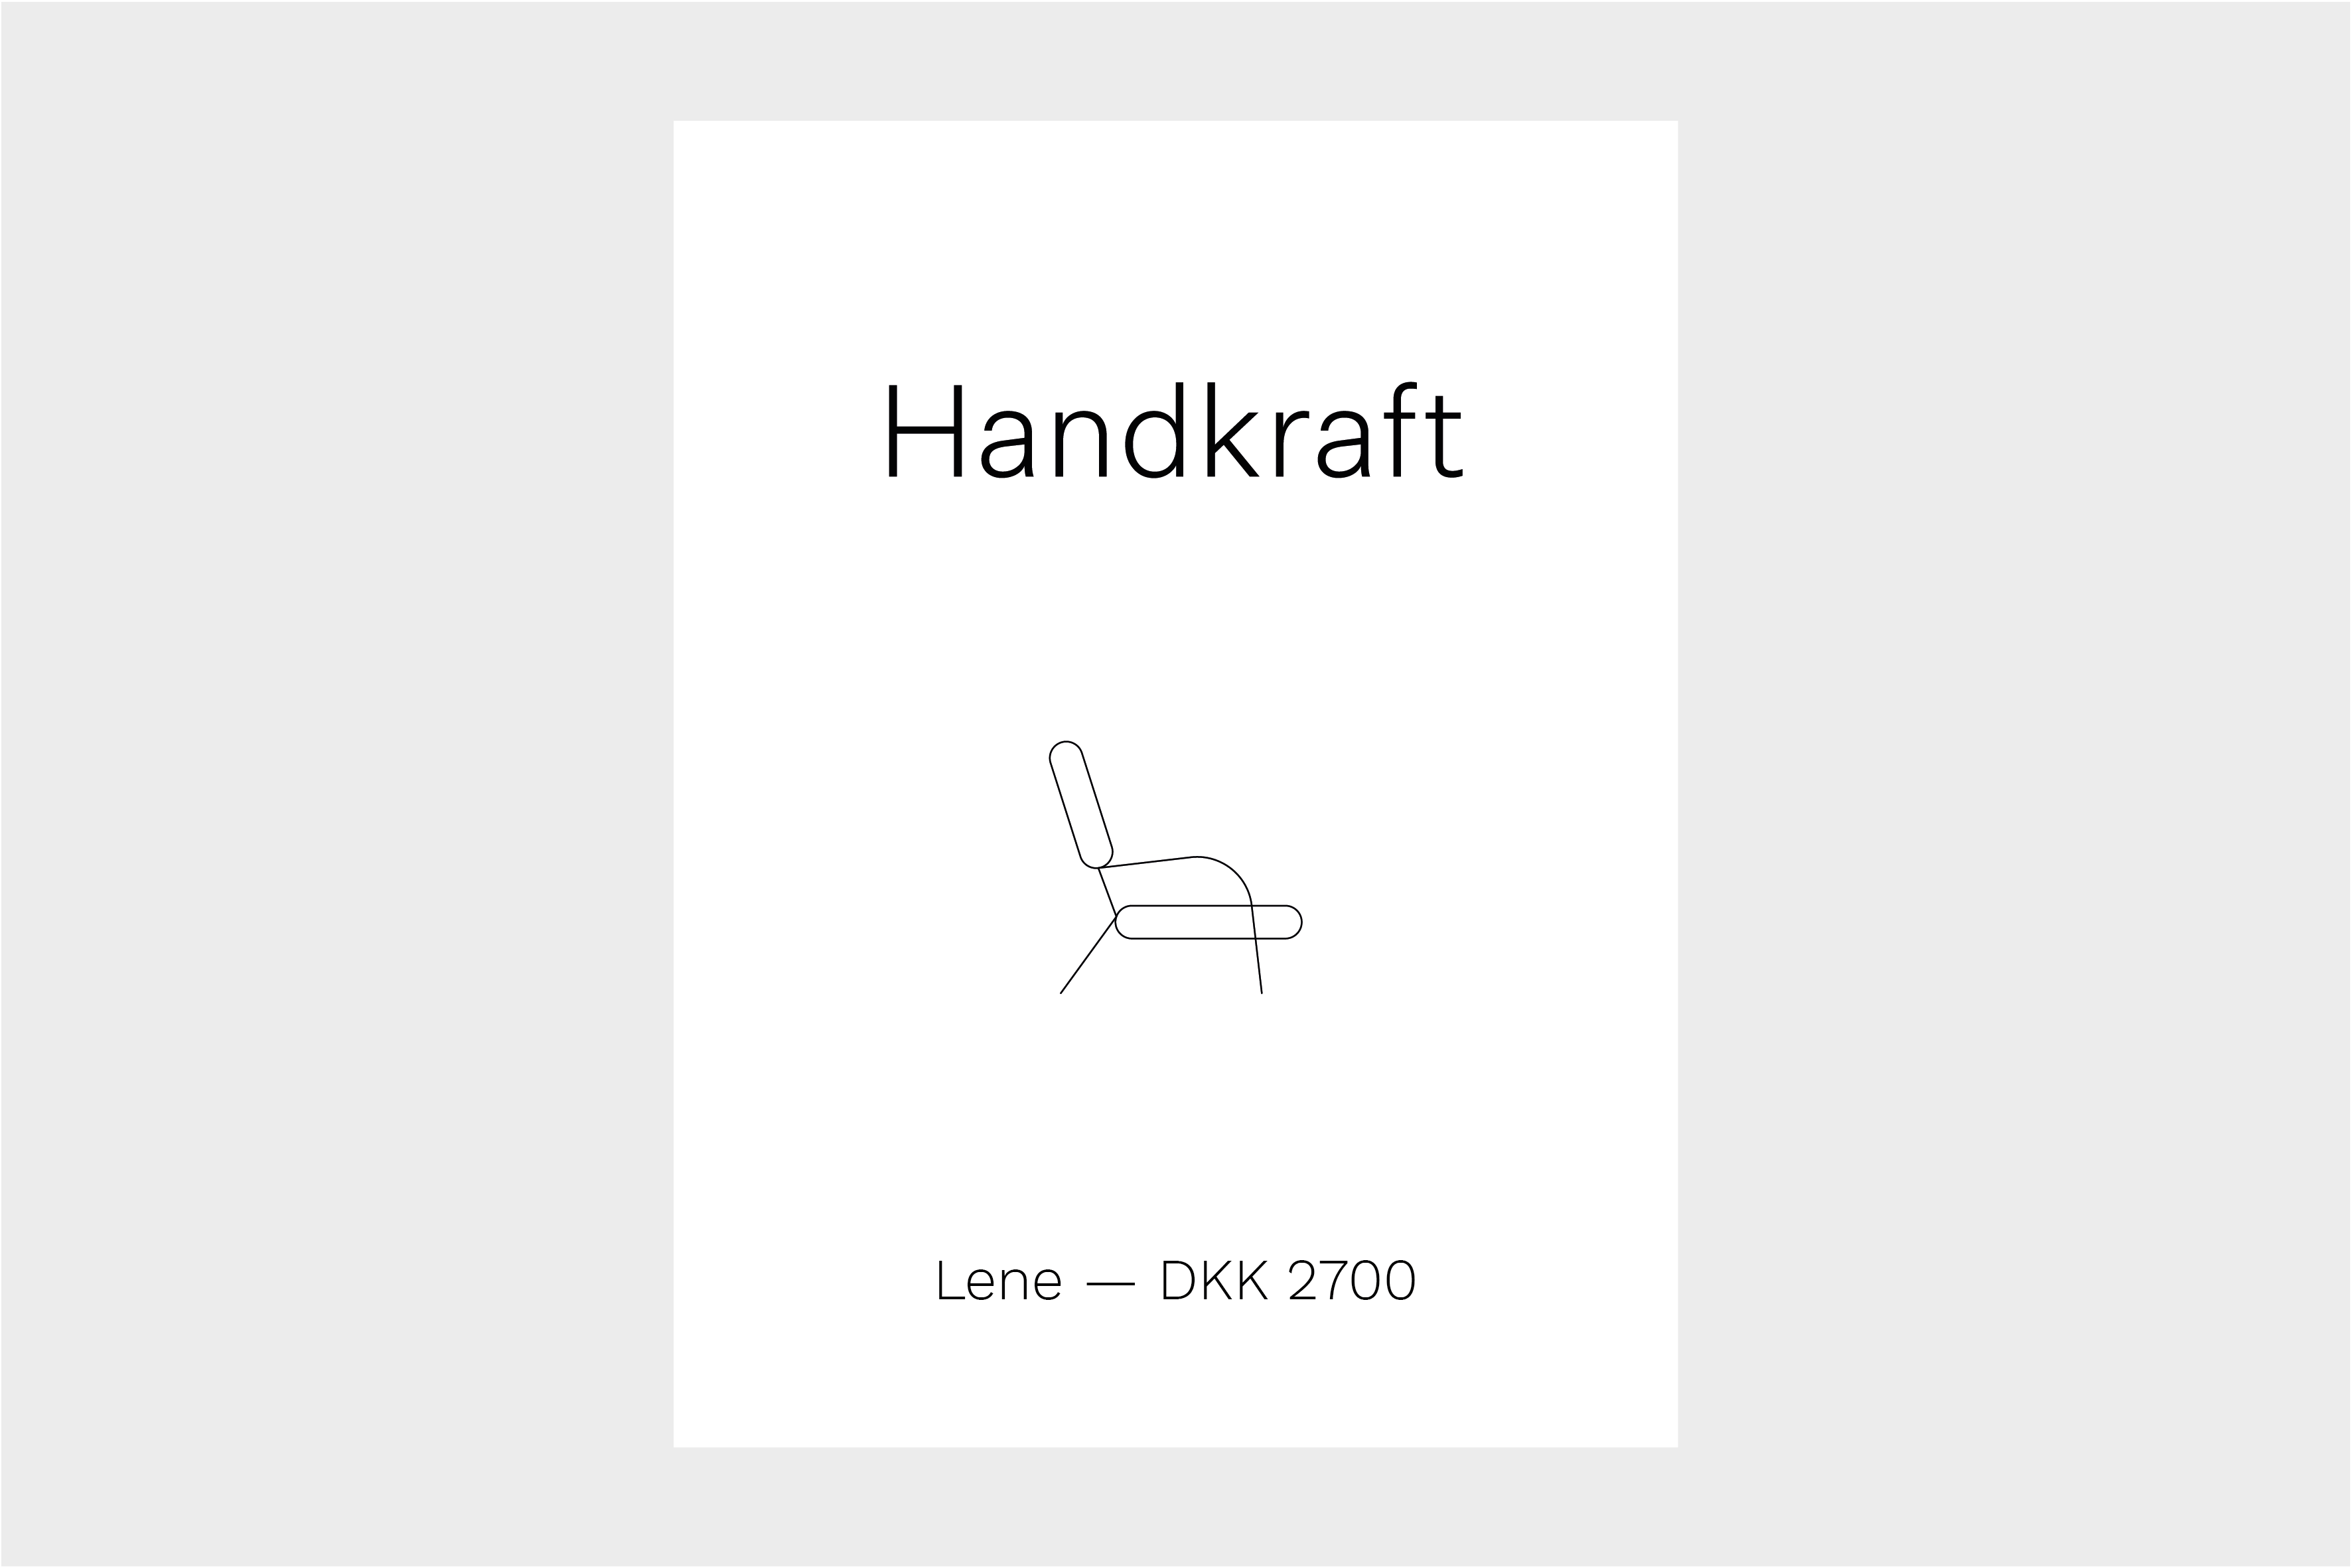 handkraft_templates_store_price_tag